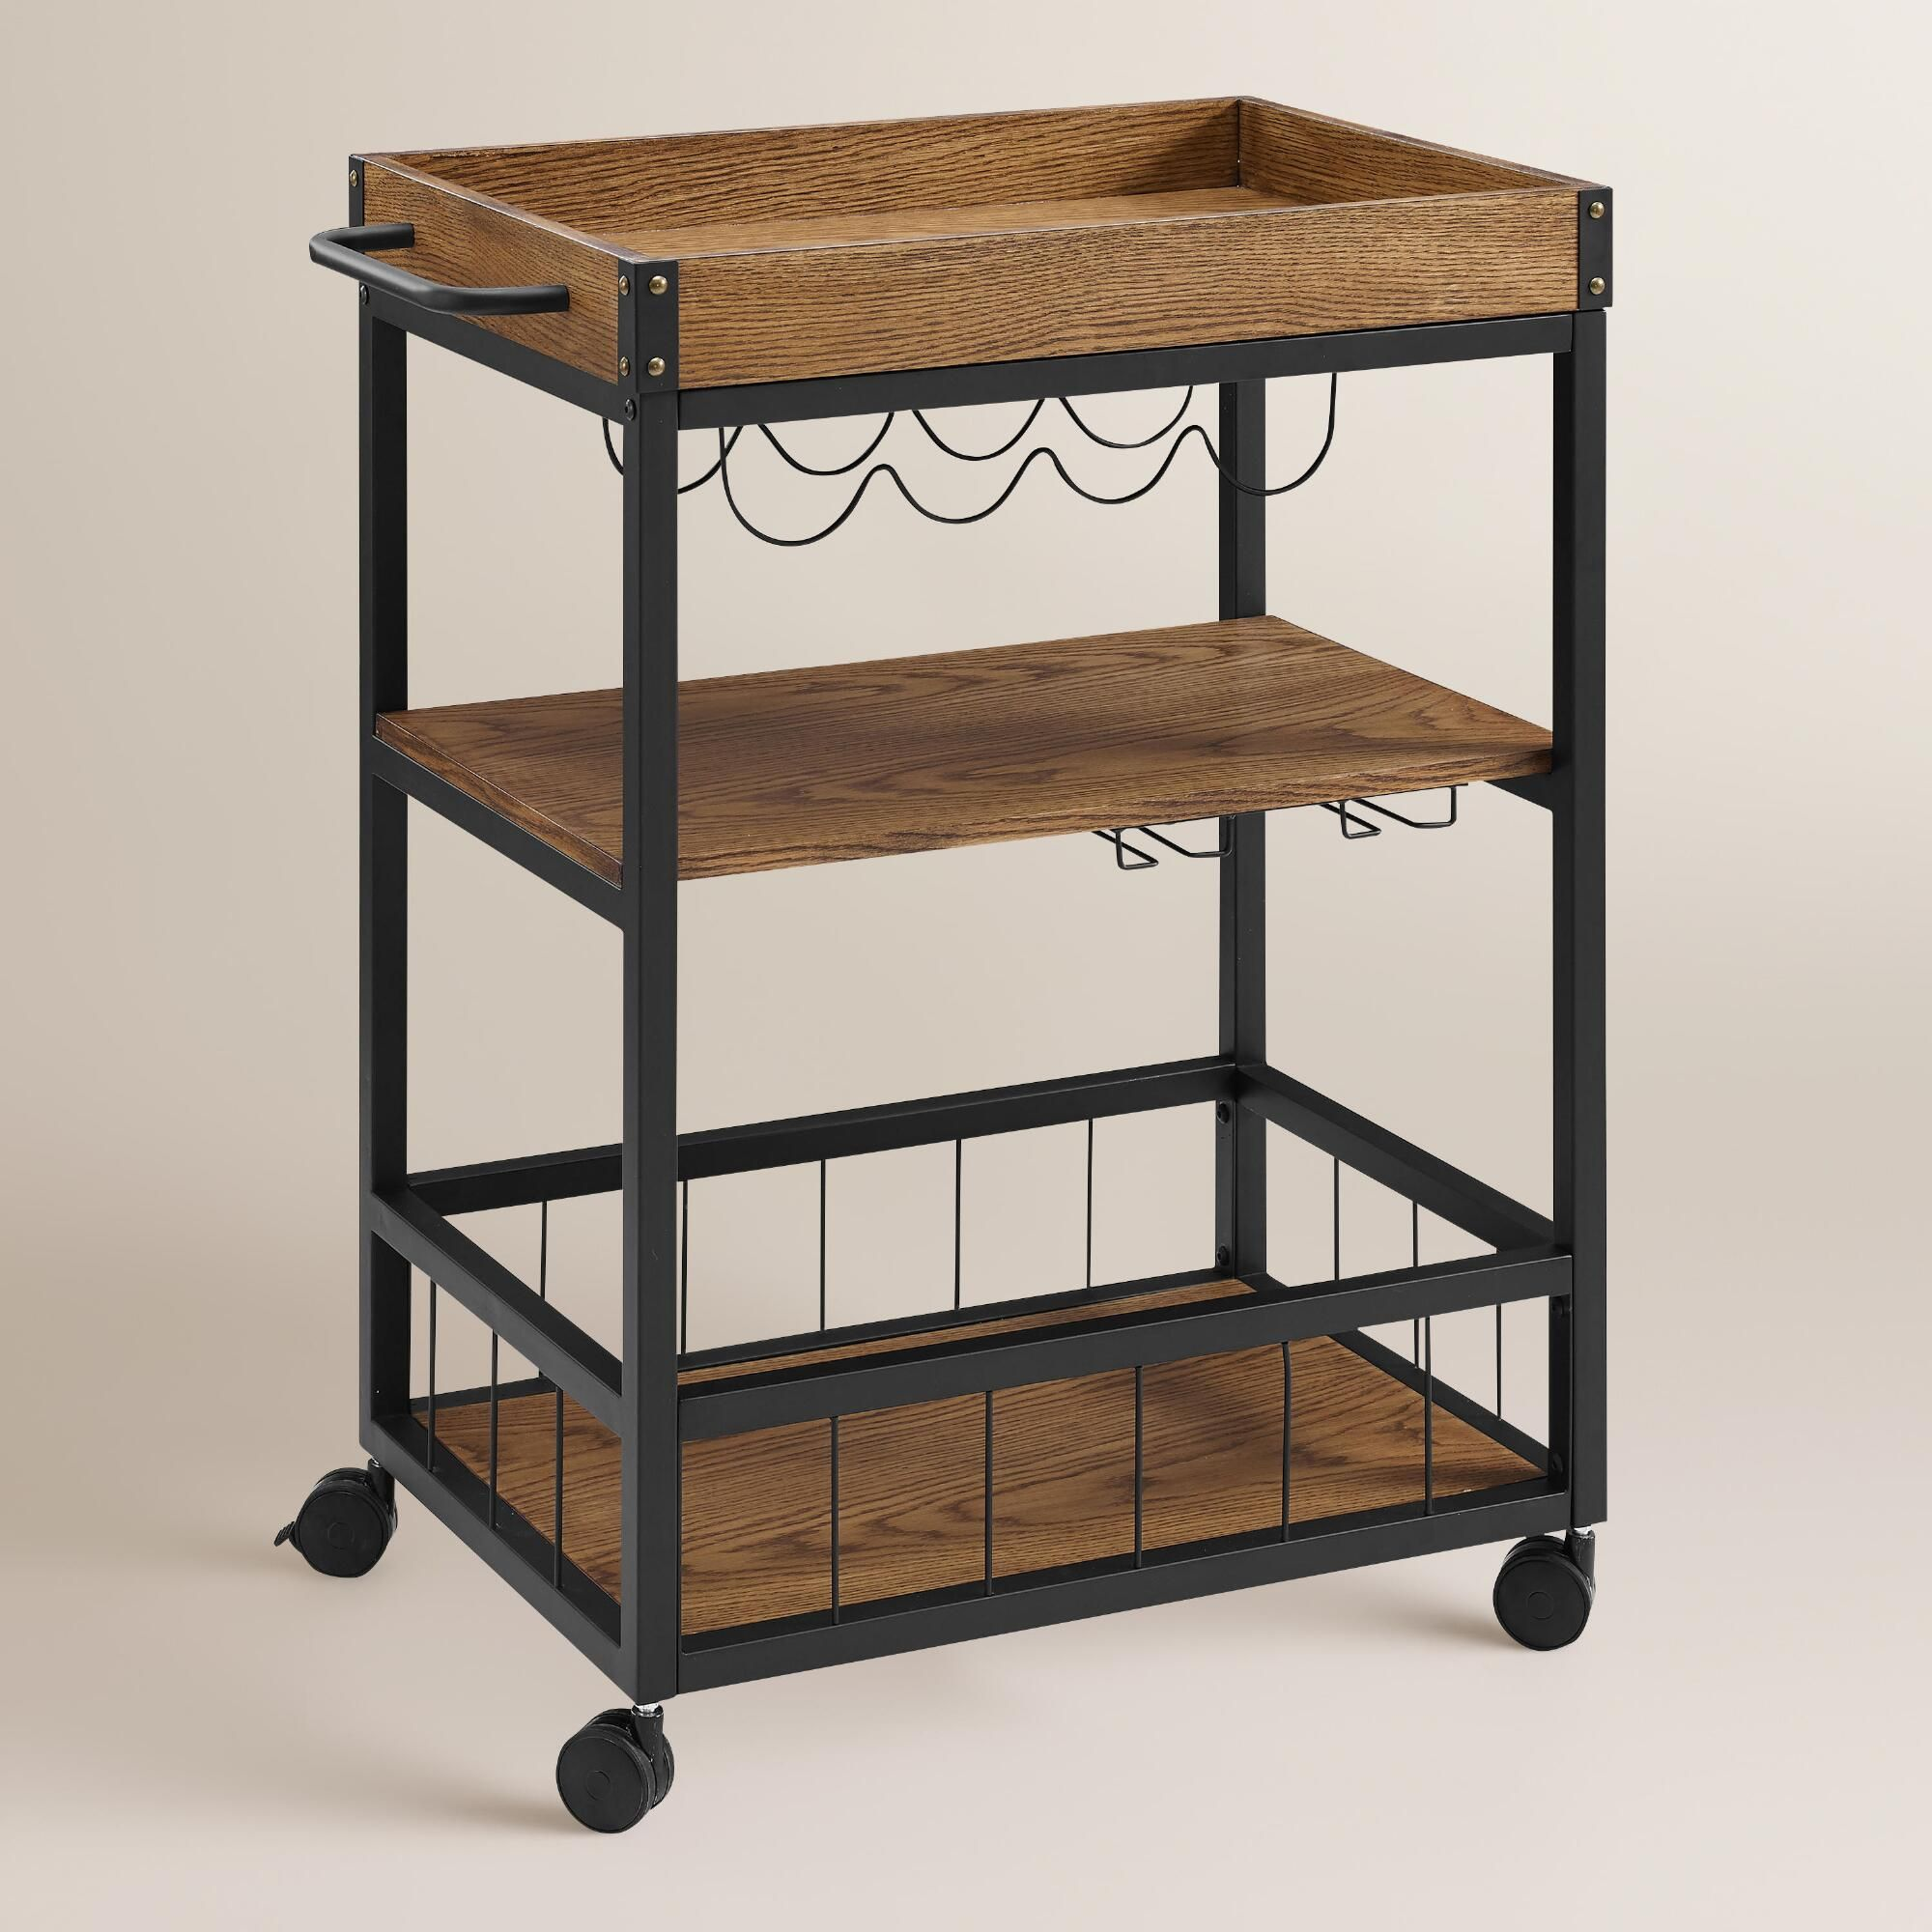 crafted of black metal with rich brown wood plank shelves and top